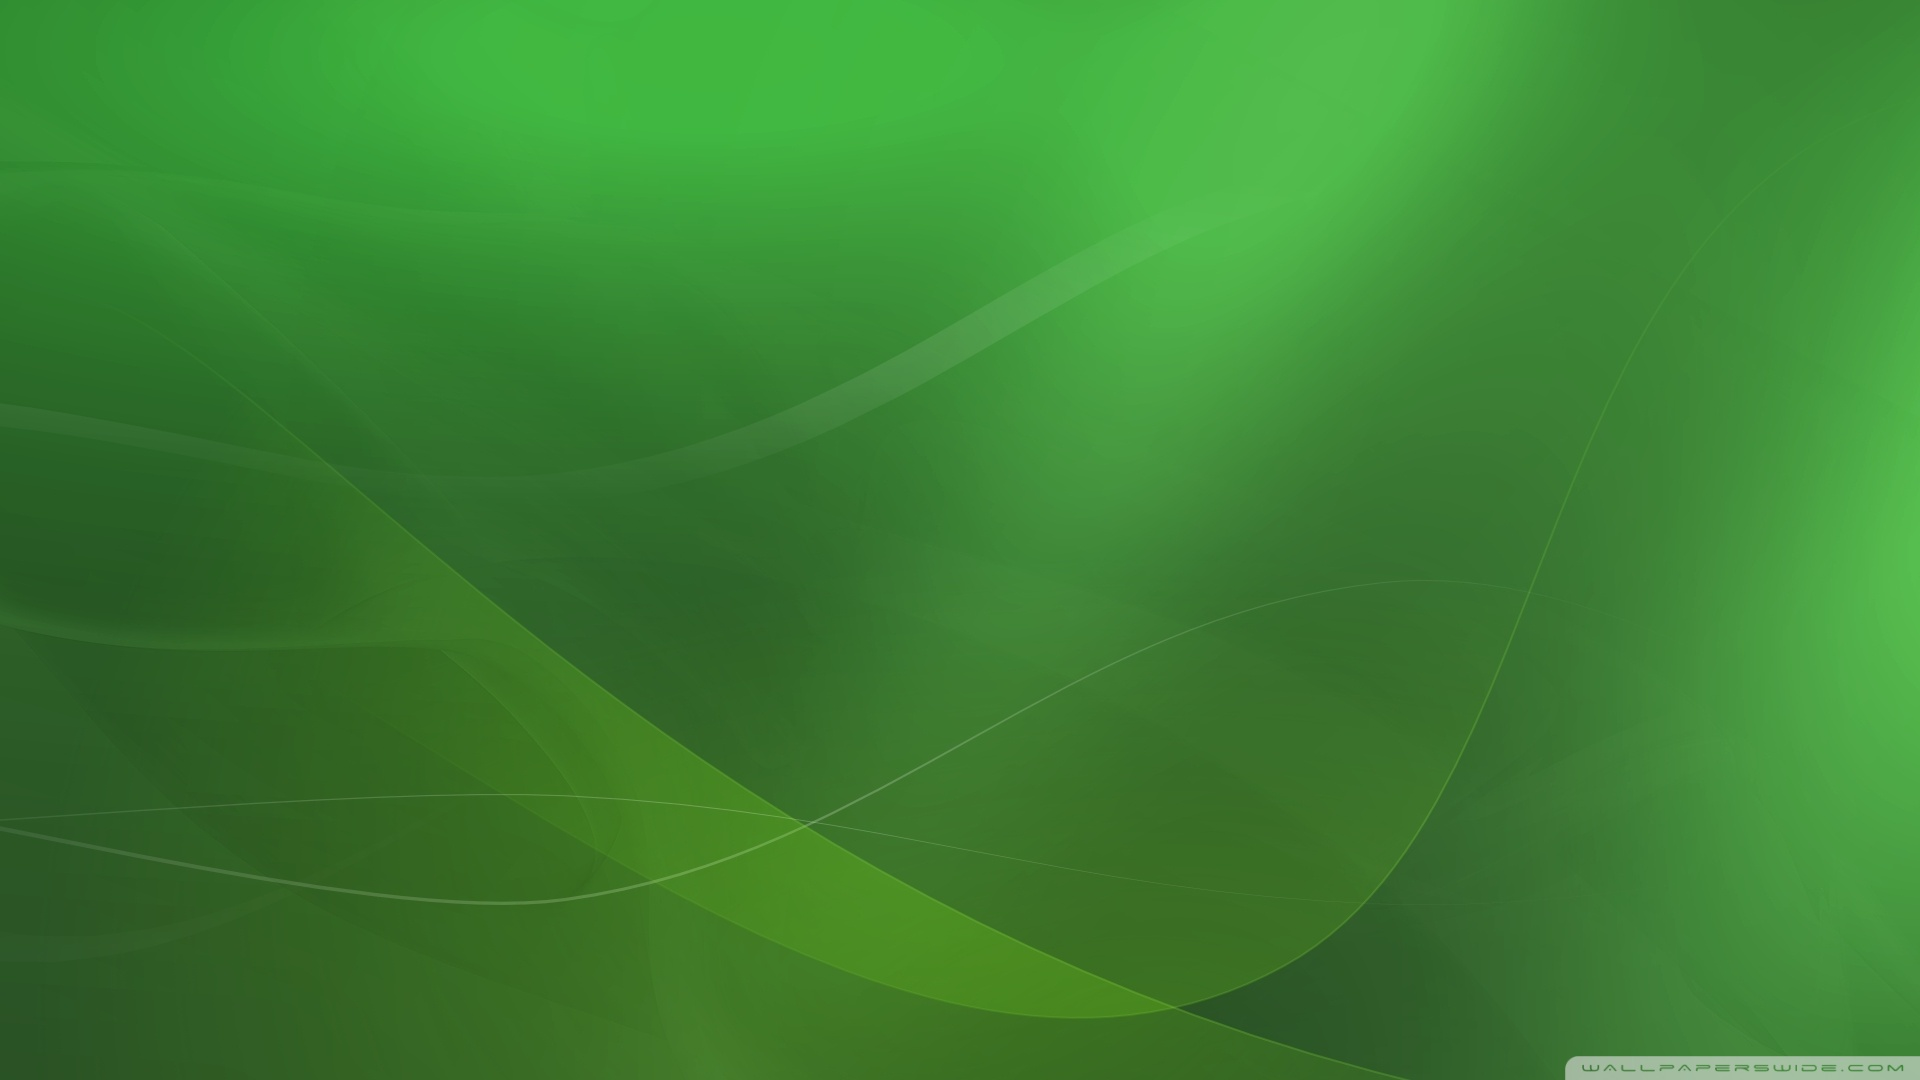 Green Background Design Wallpaper 45 HD Green Wal...